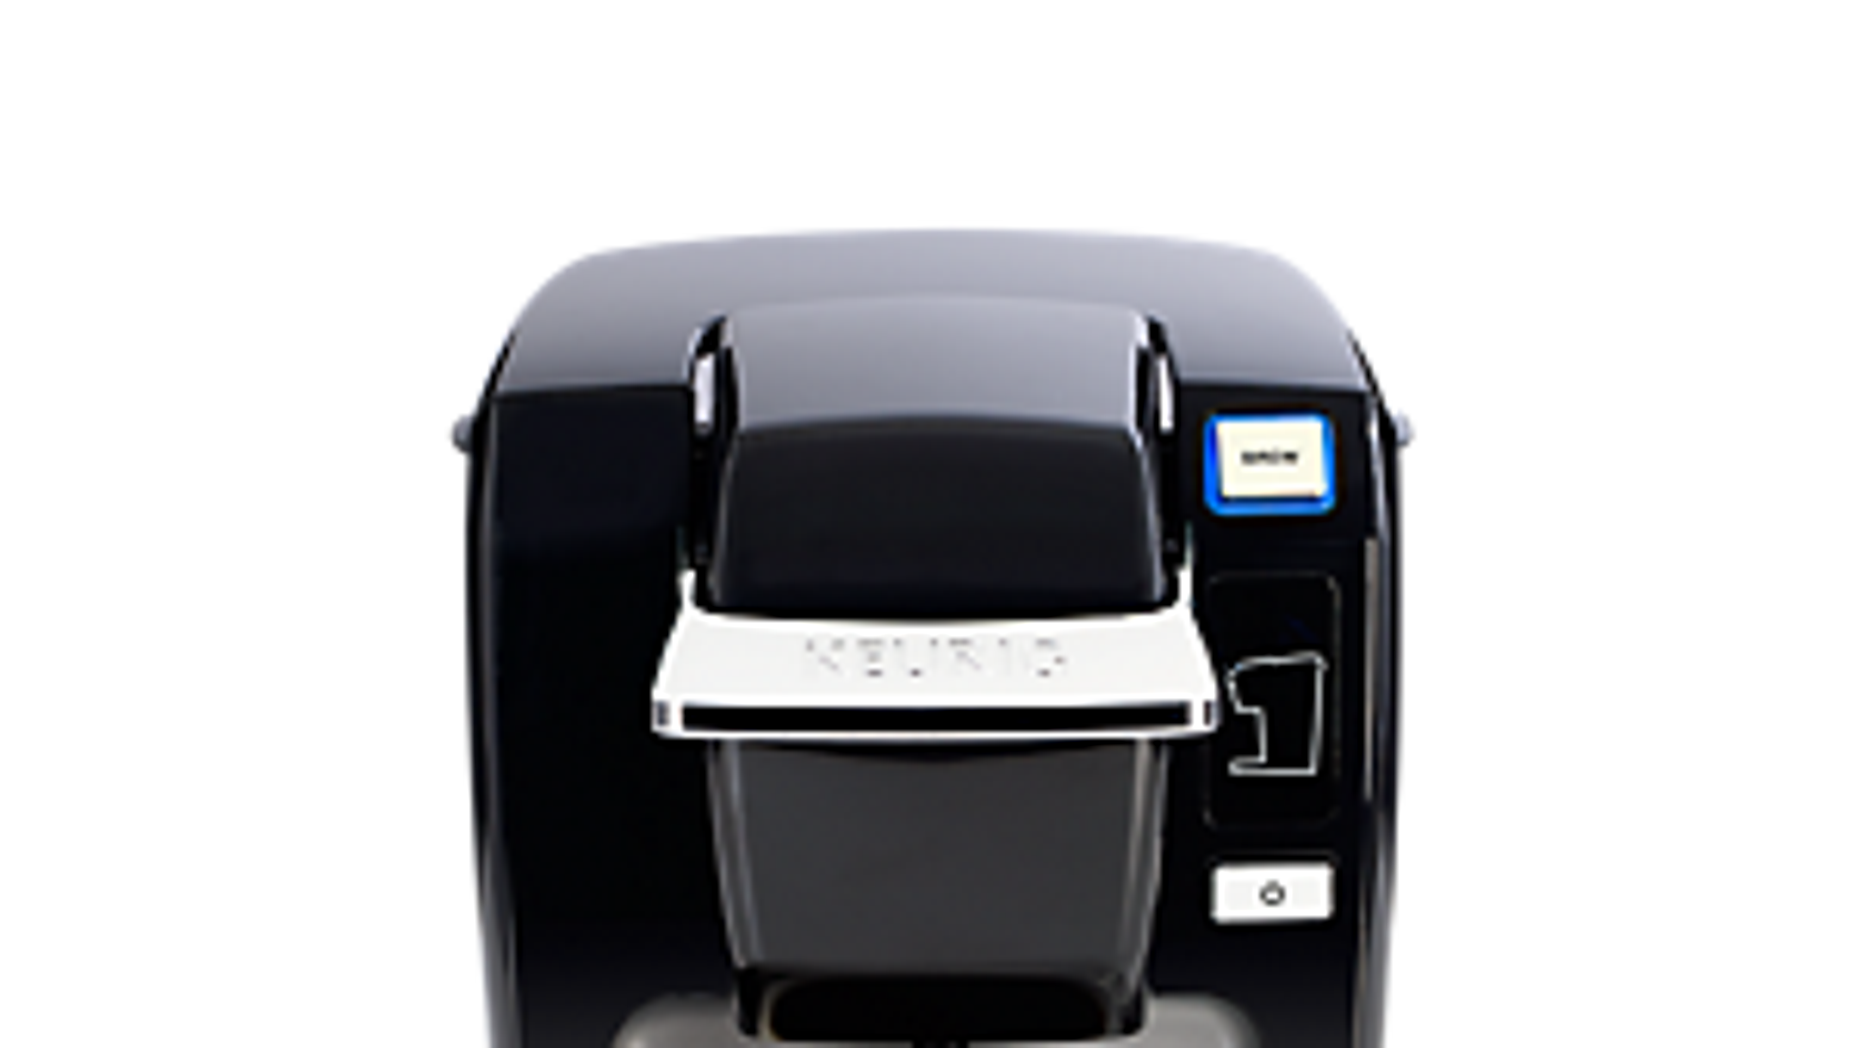 Keurig received about 200 reports of hot liquid spraying from the brewer, resulting in burn-related injuries.